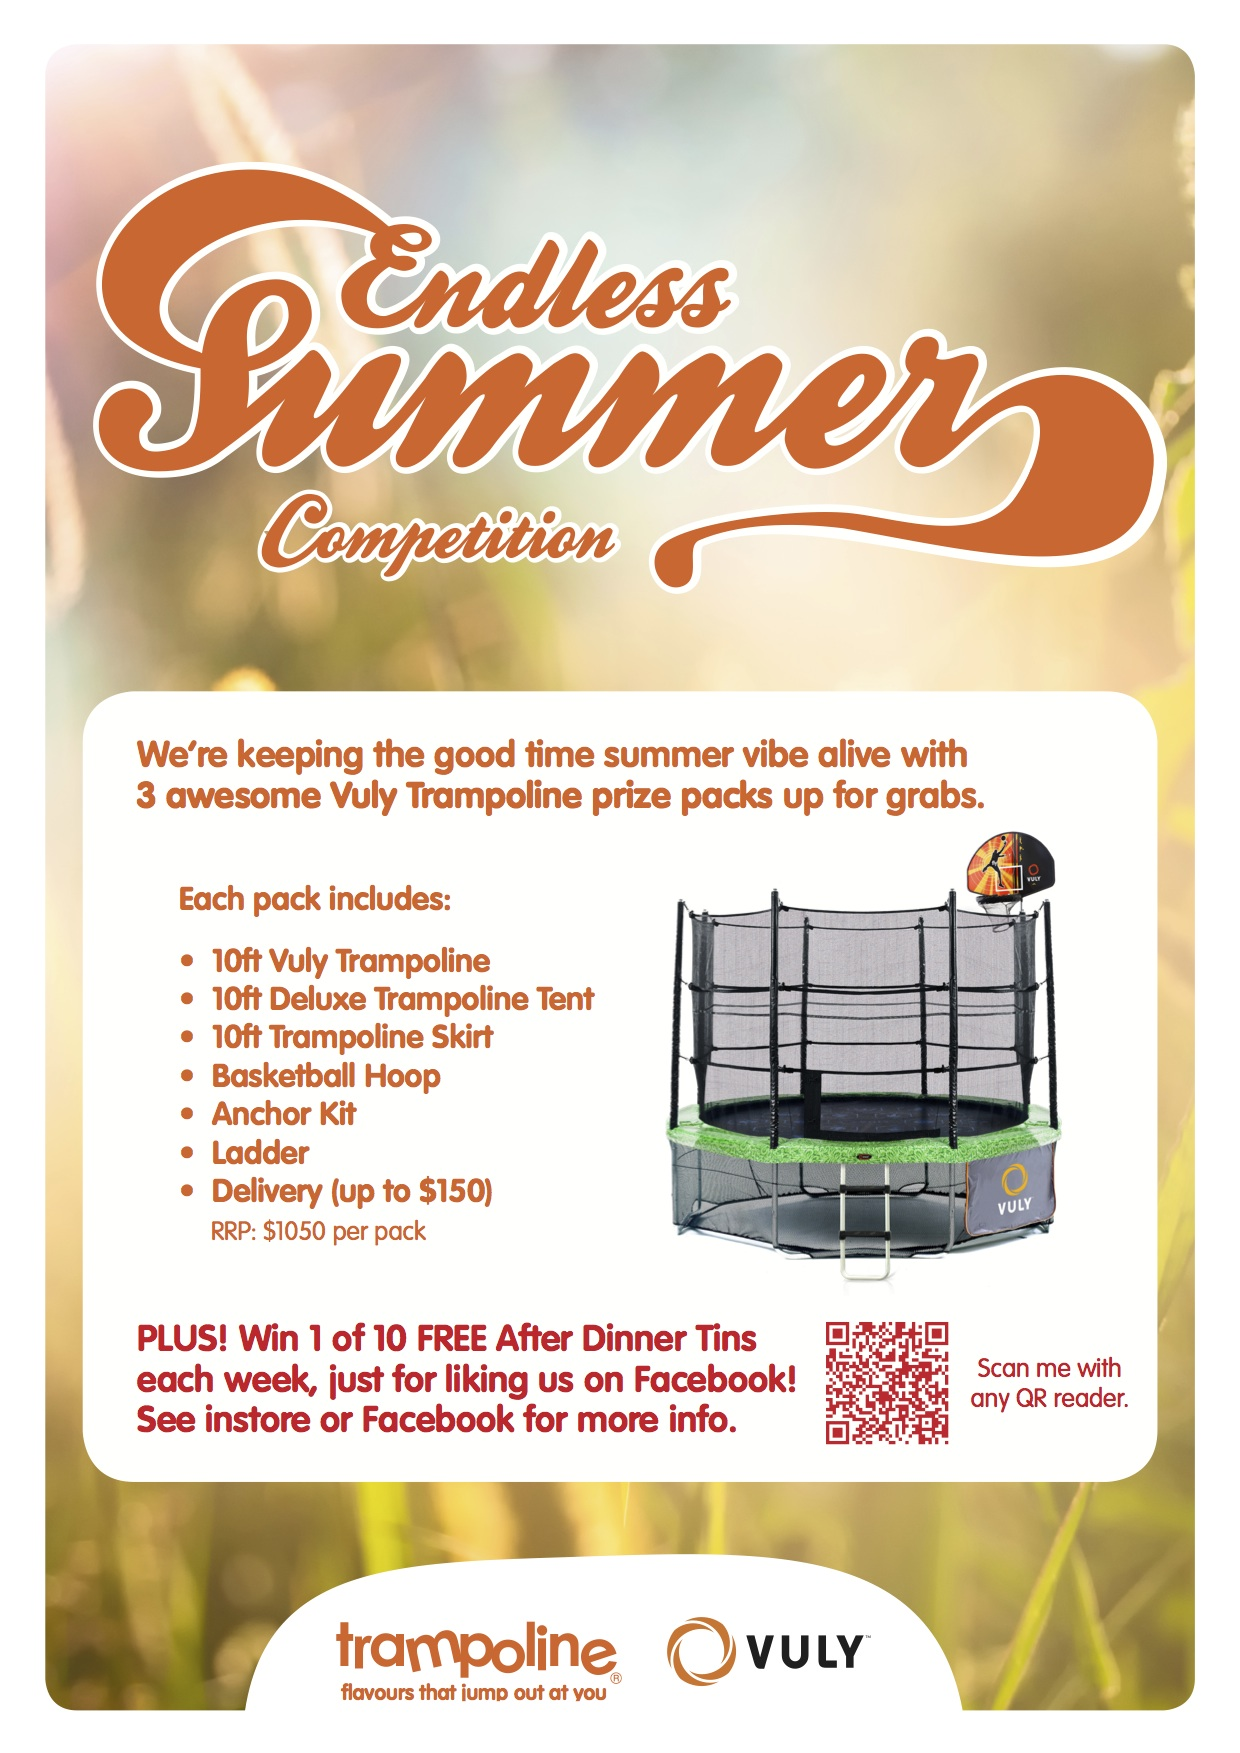 Endless Summer Competition